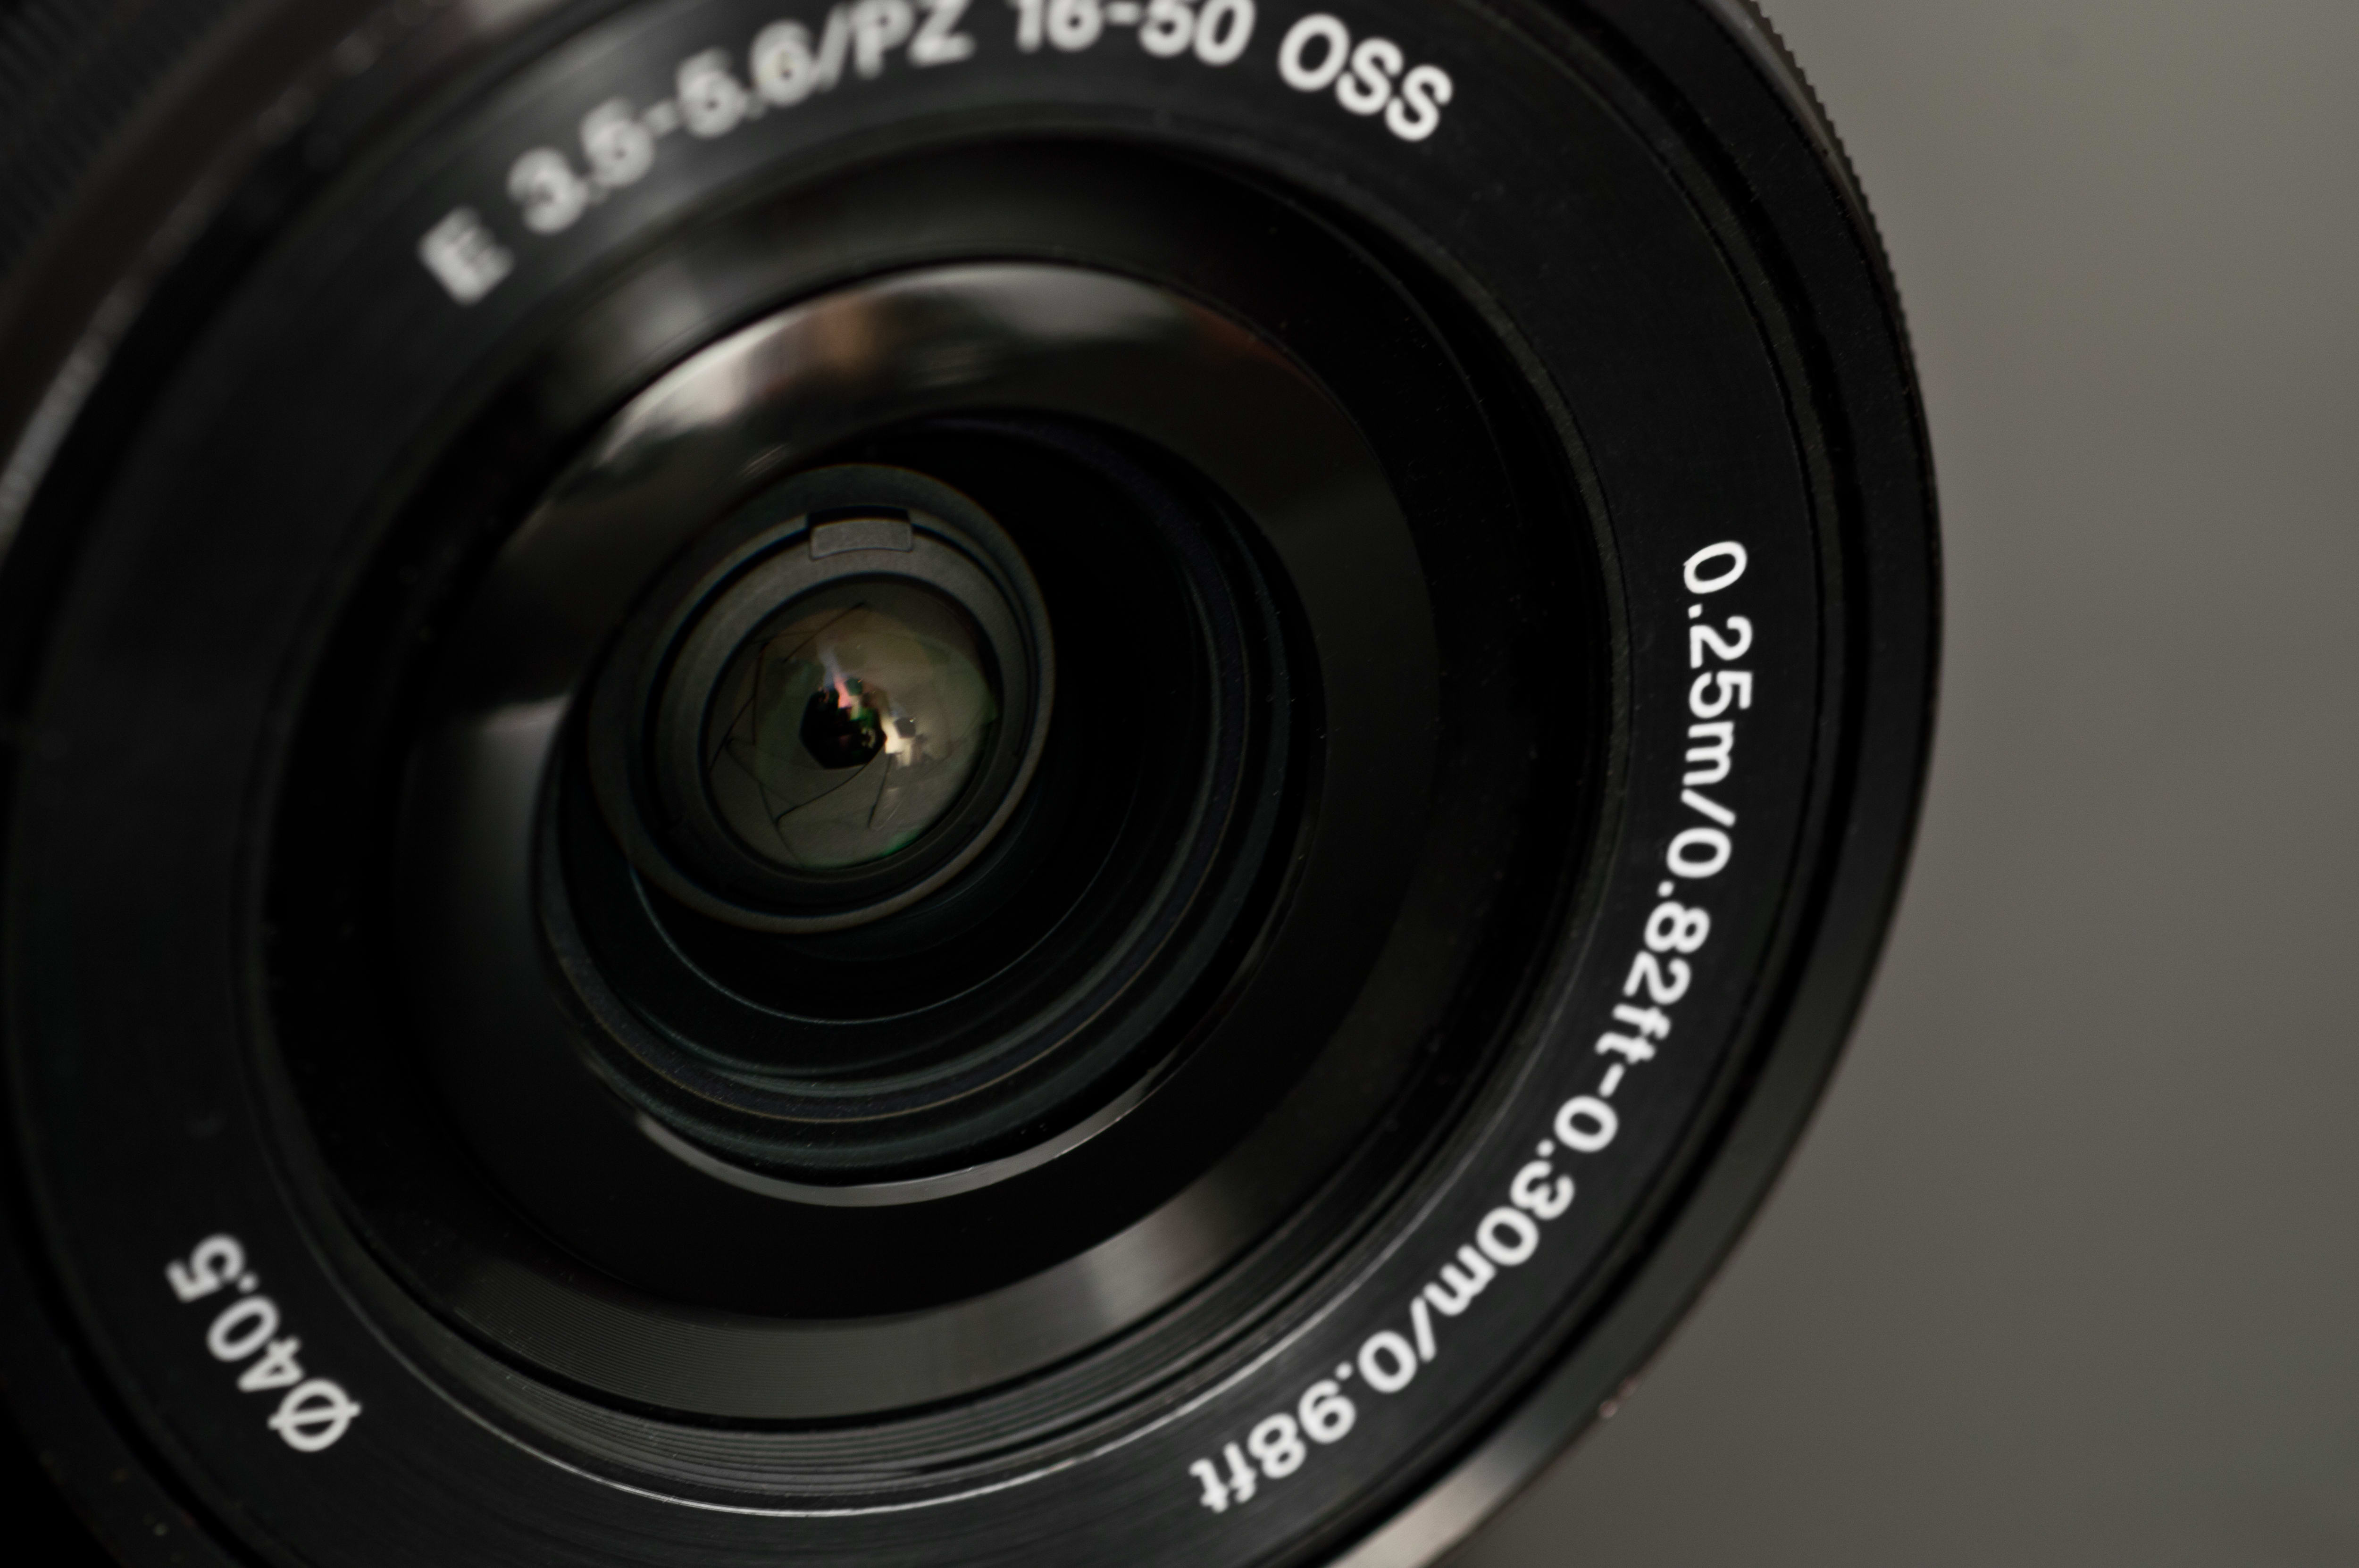 Shot of the 16-50mm f/3.5-5.6 at f/36.